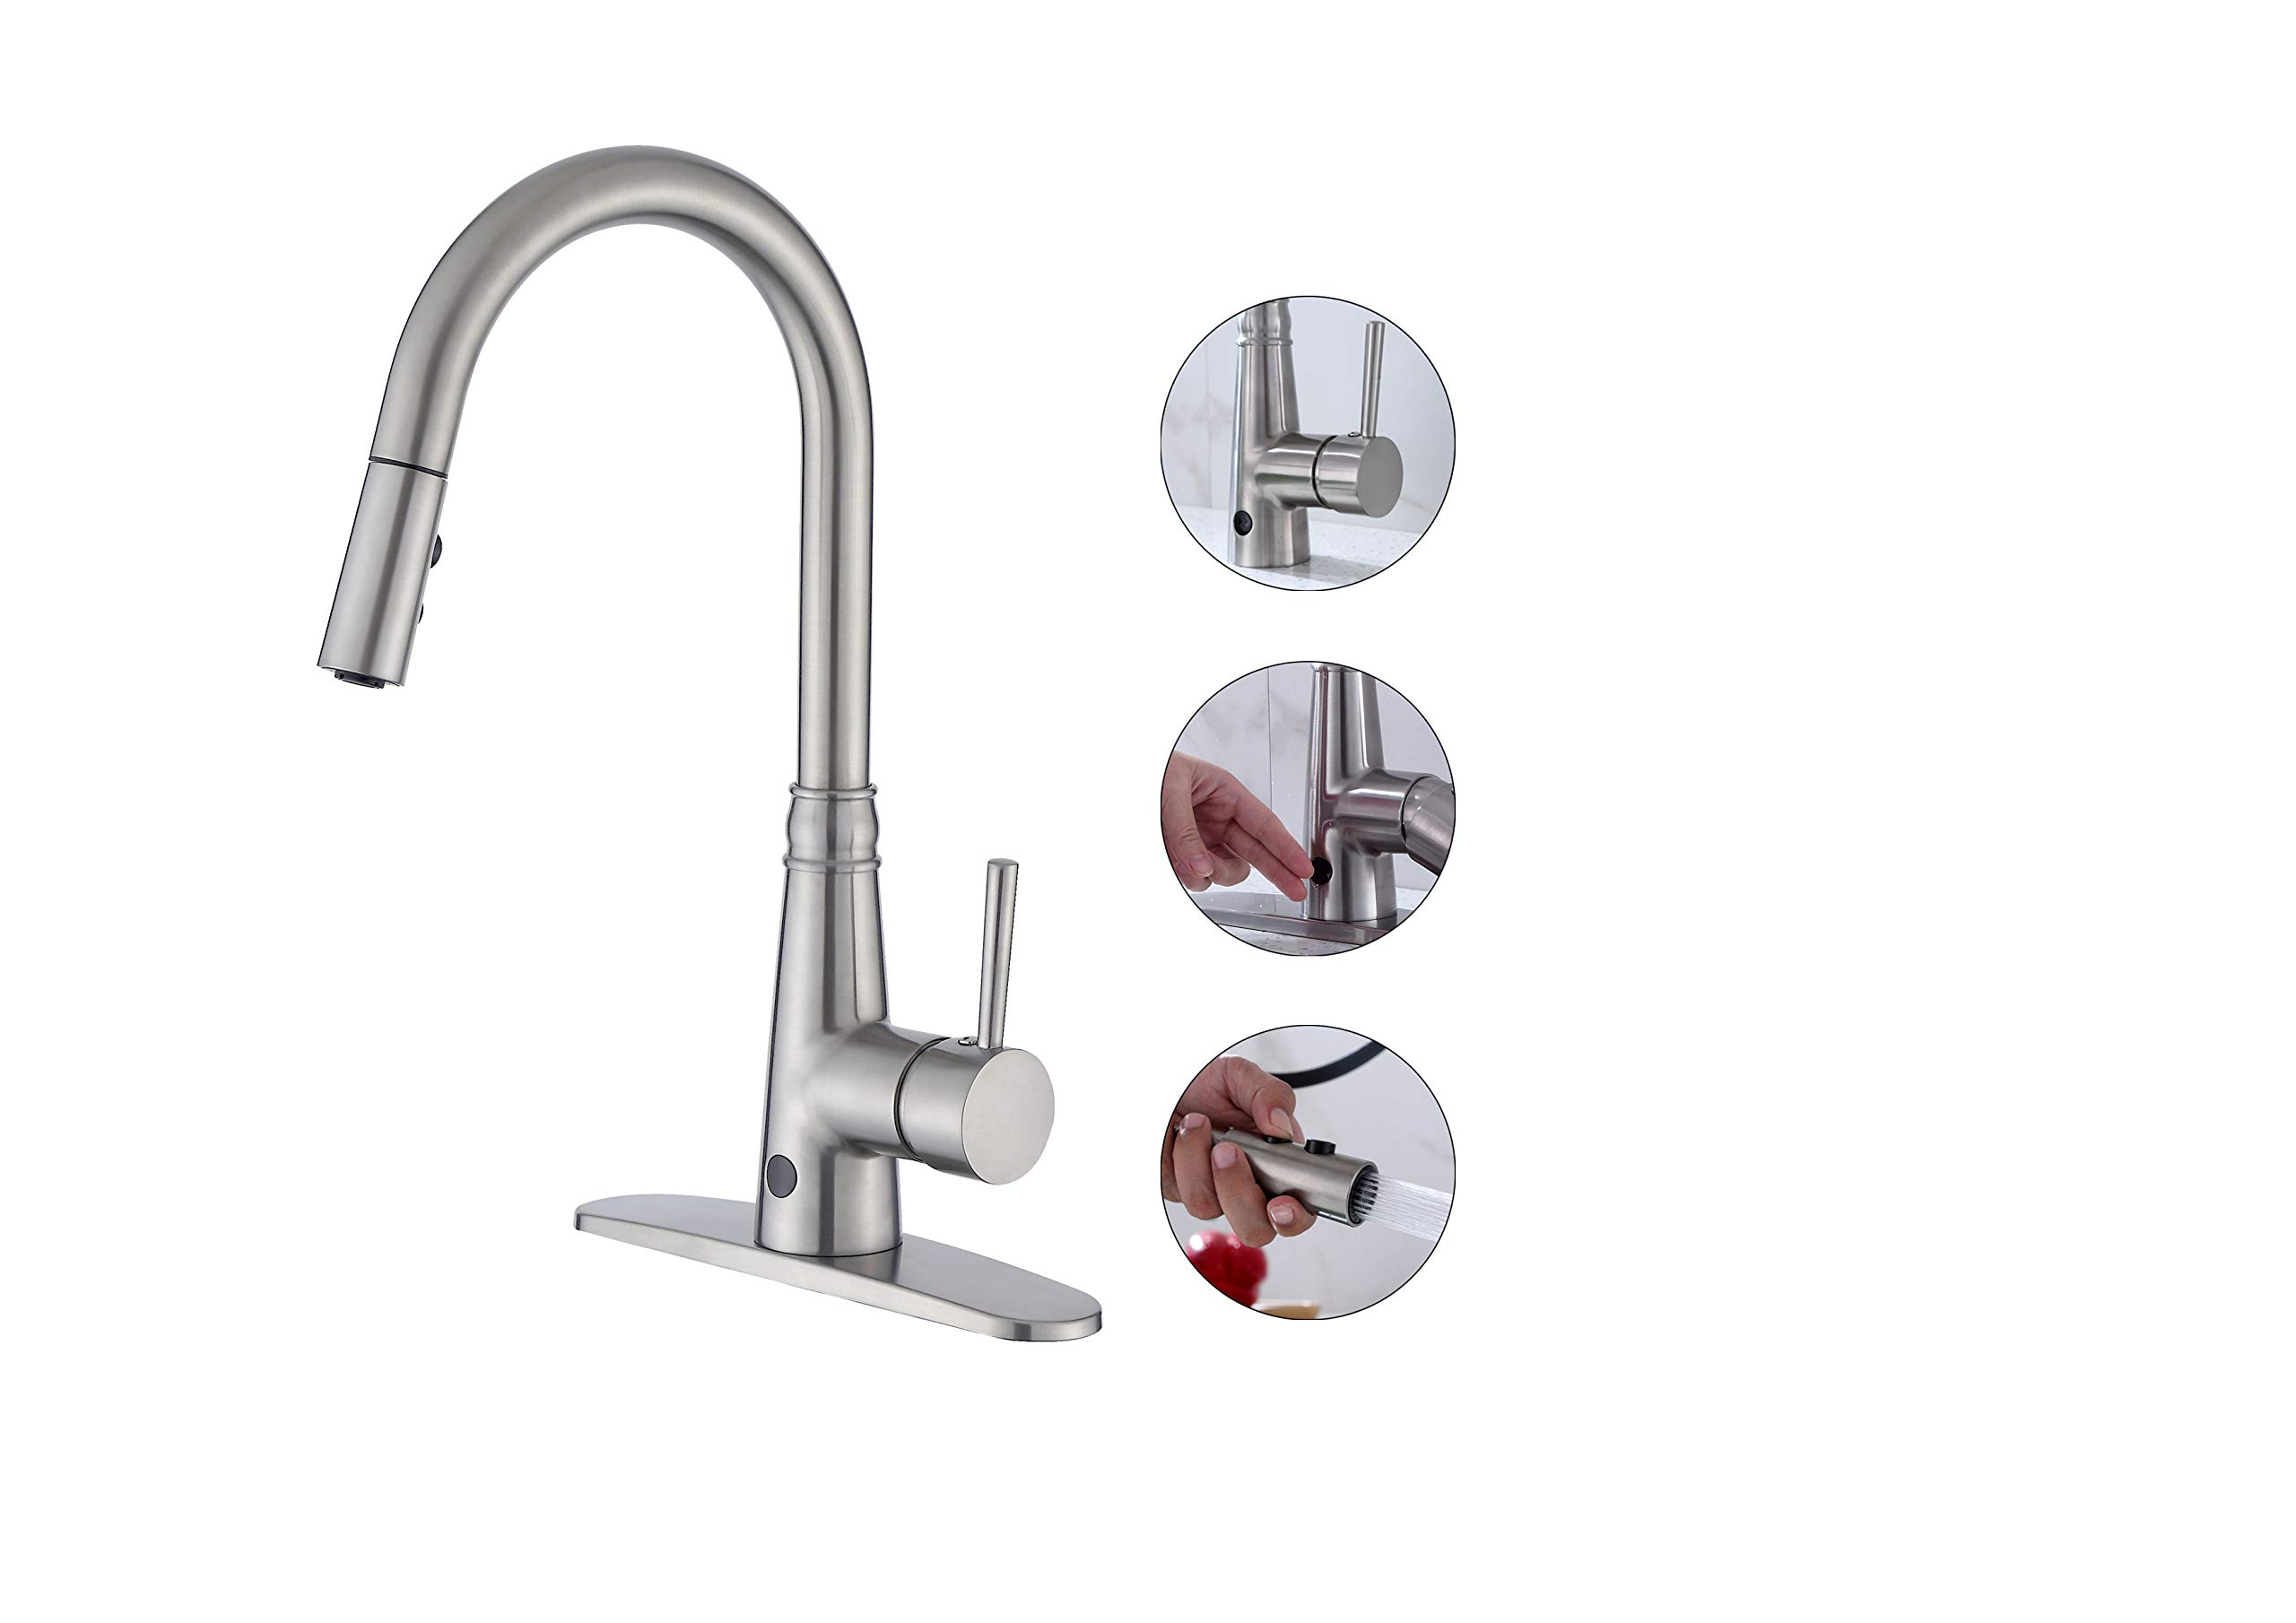 BuyHive Sensor Kitchen Faucet Touchless Pull Down Sprayer Touch Motion Sink Mixer Tap Single Handle by BuyHive